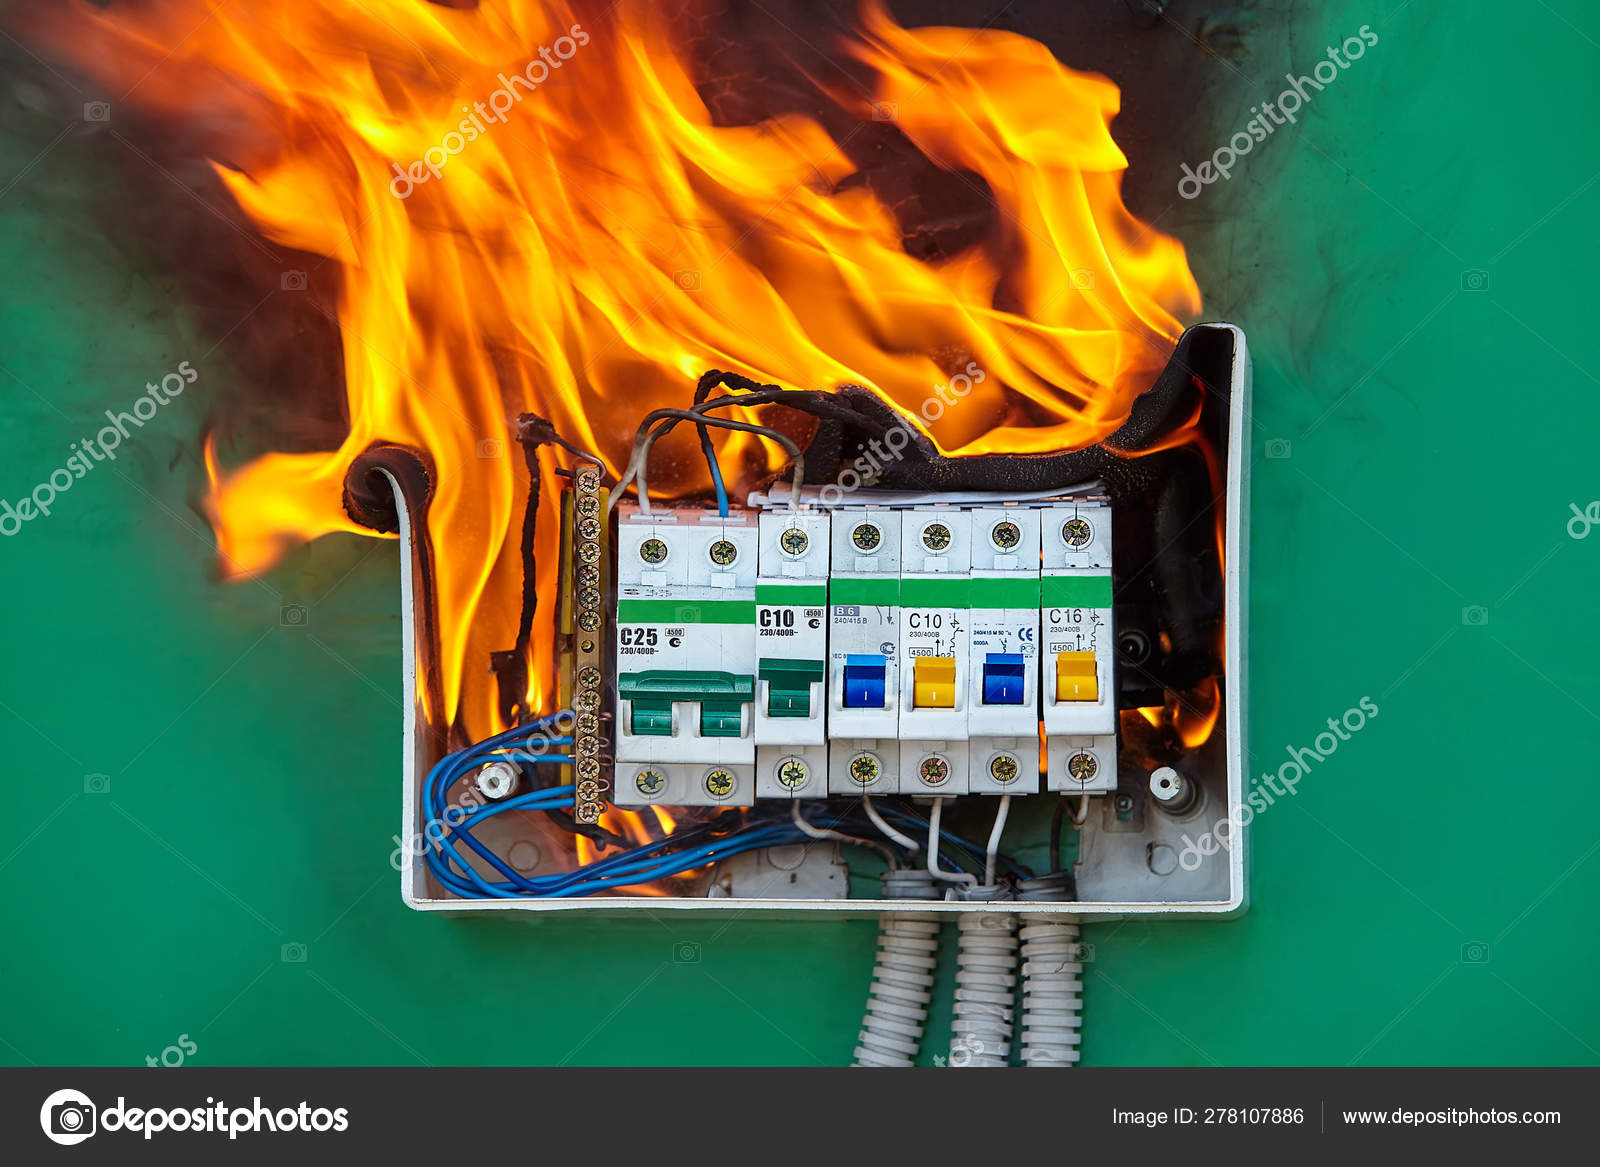 problem with electrical wiring caused a fire \u2014 stock photo electrical shock electricity short circuit stock photo